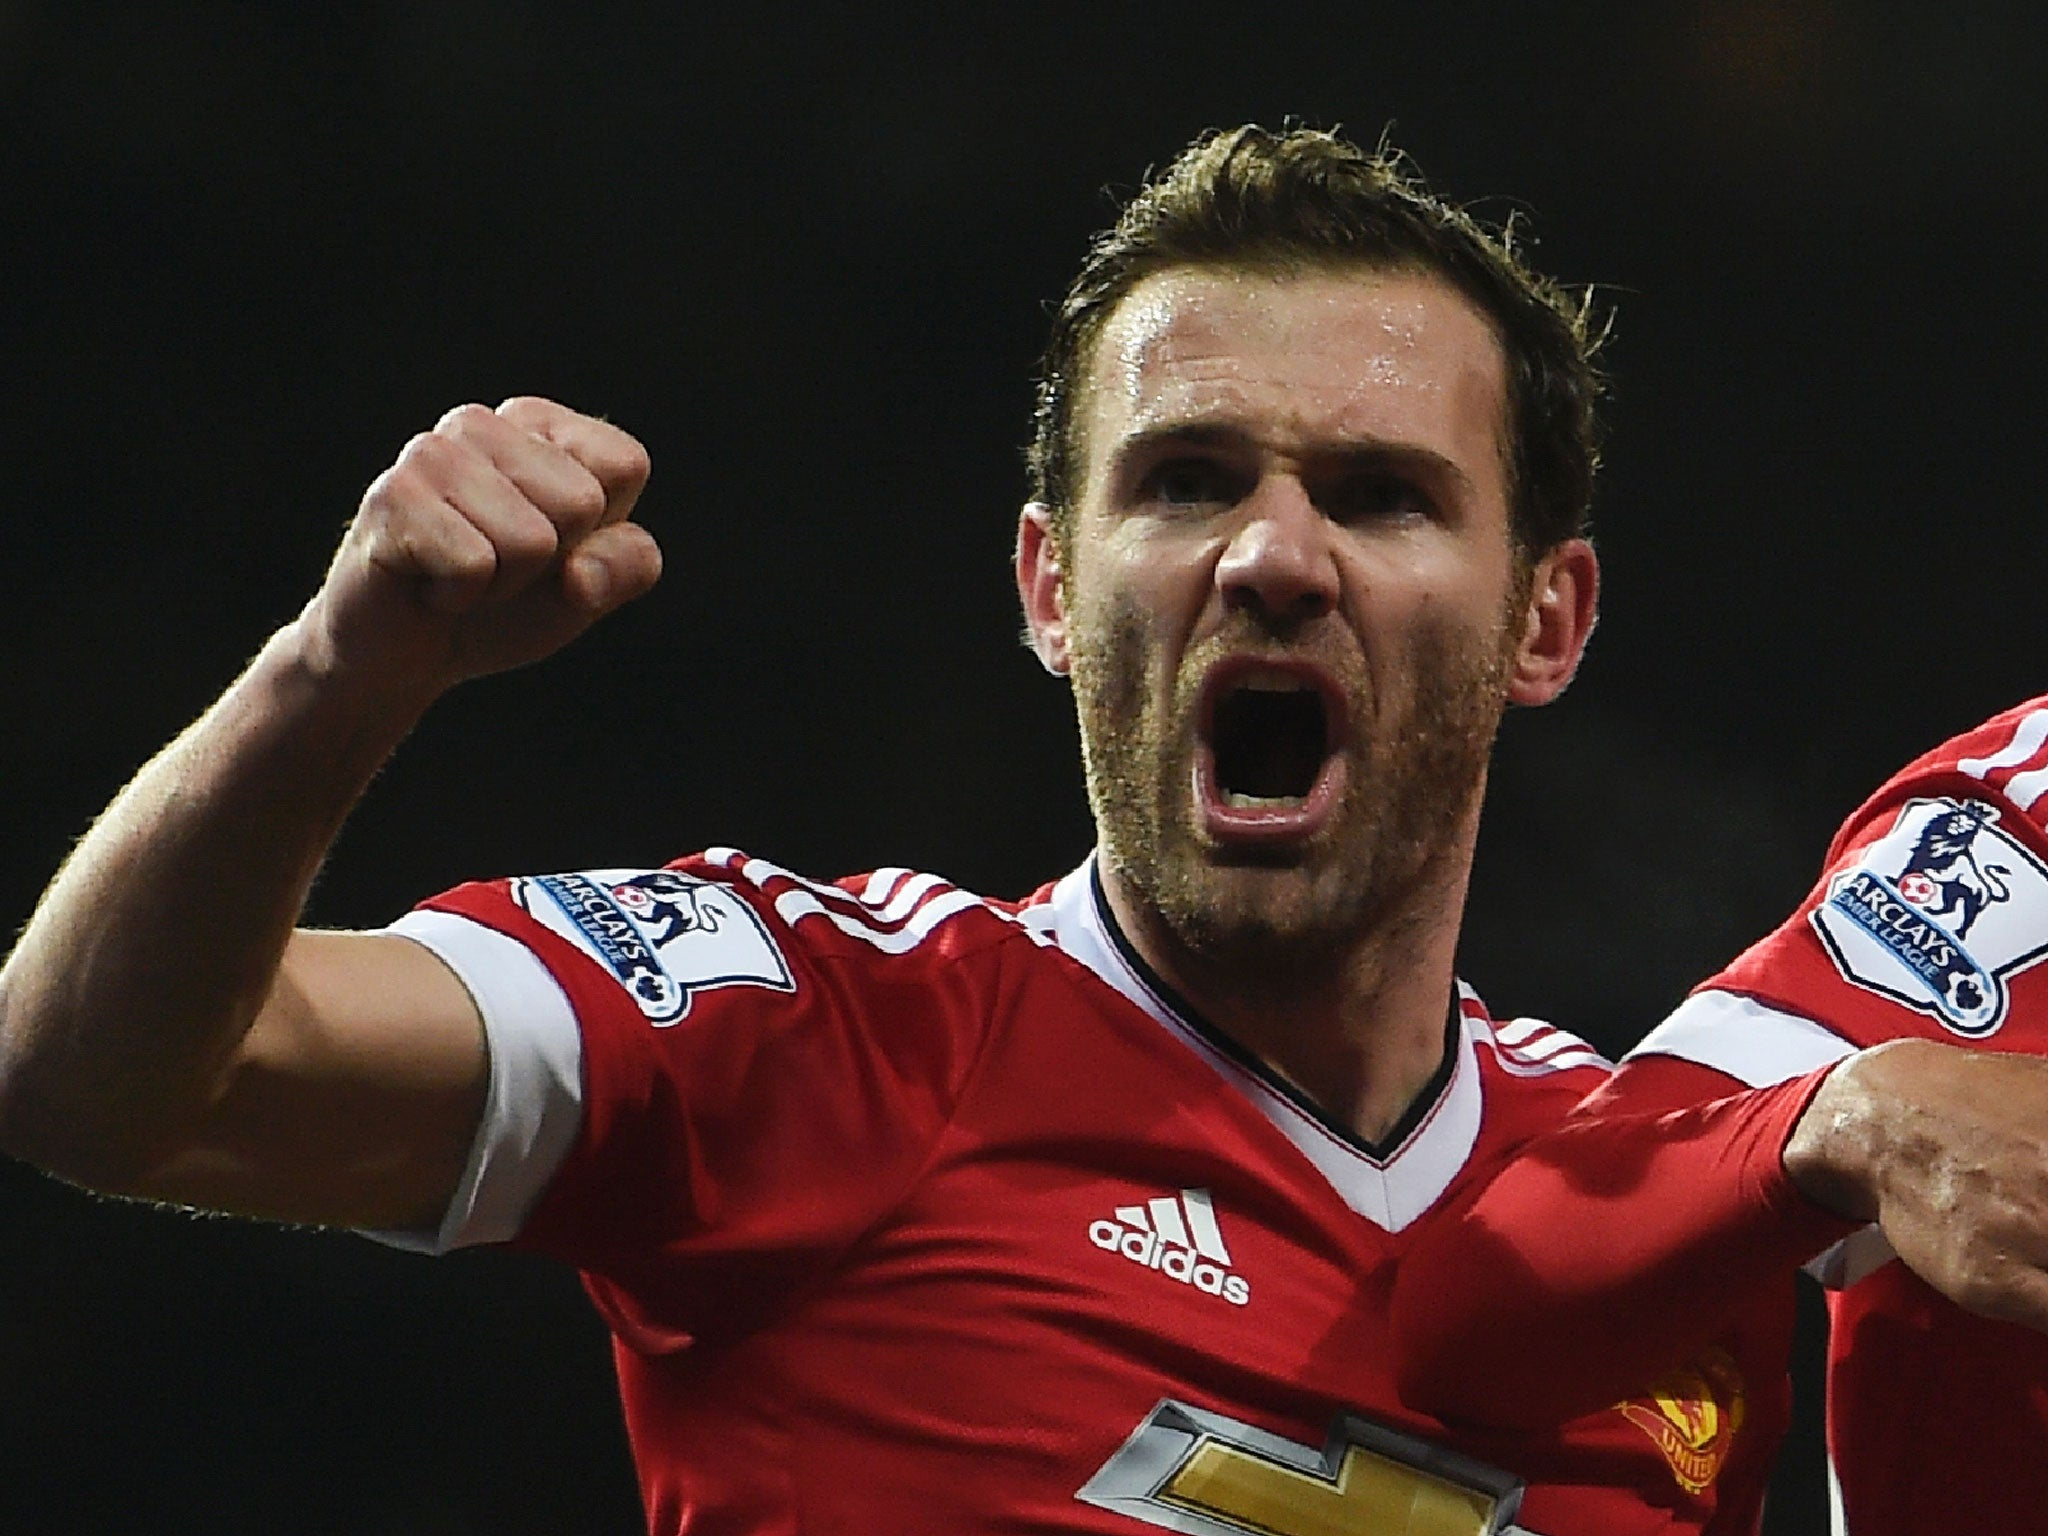 Manchester United can play attractive football under Louis van Gaal, says Juan Mata